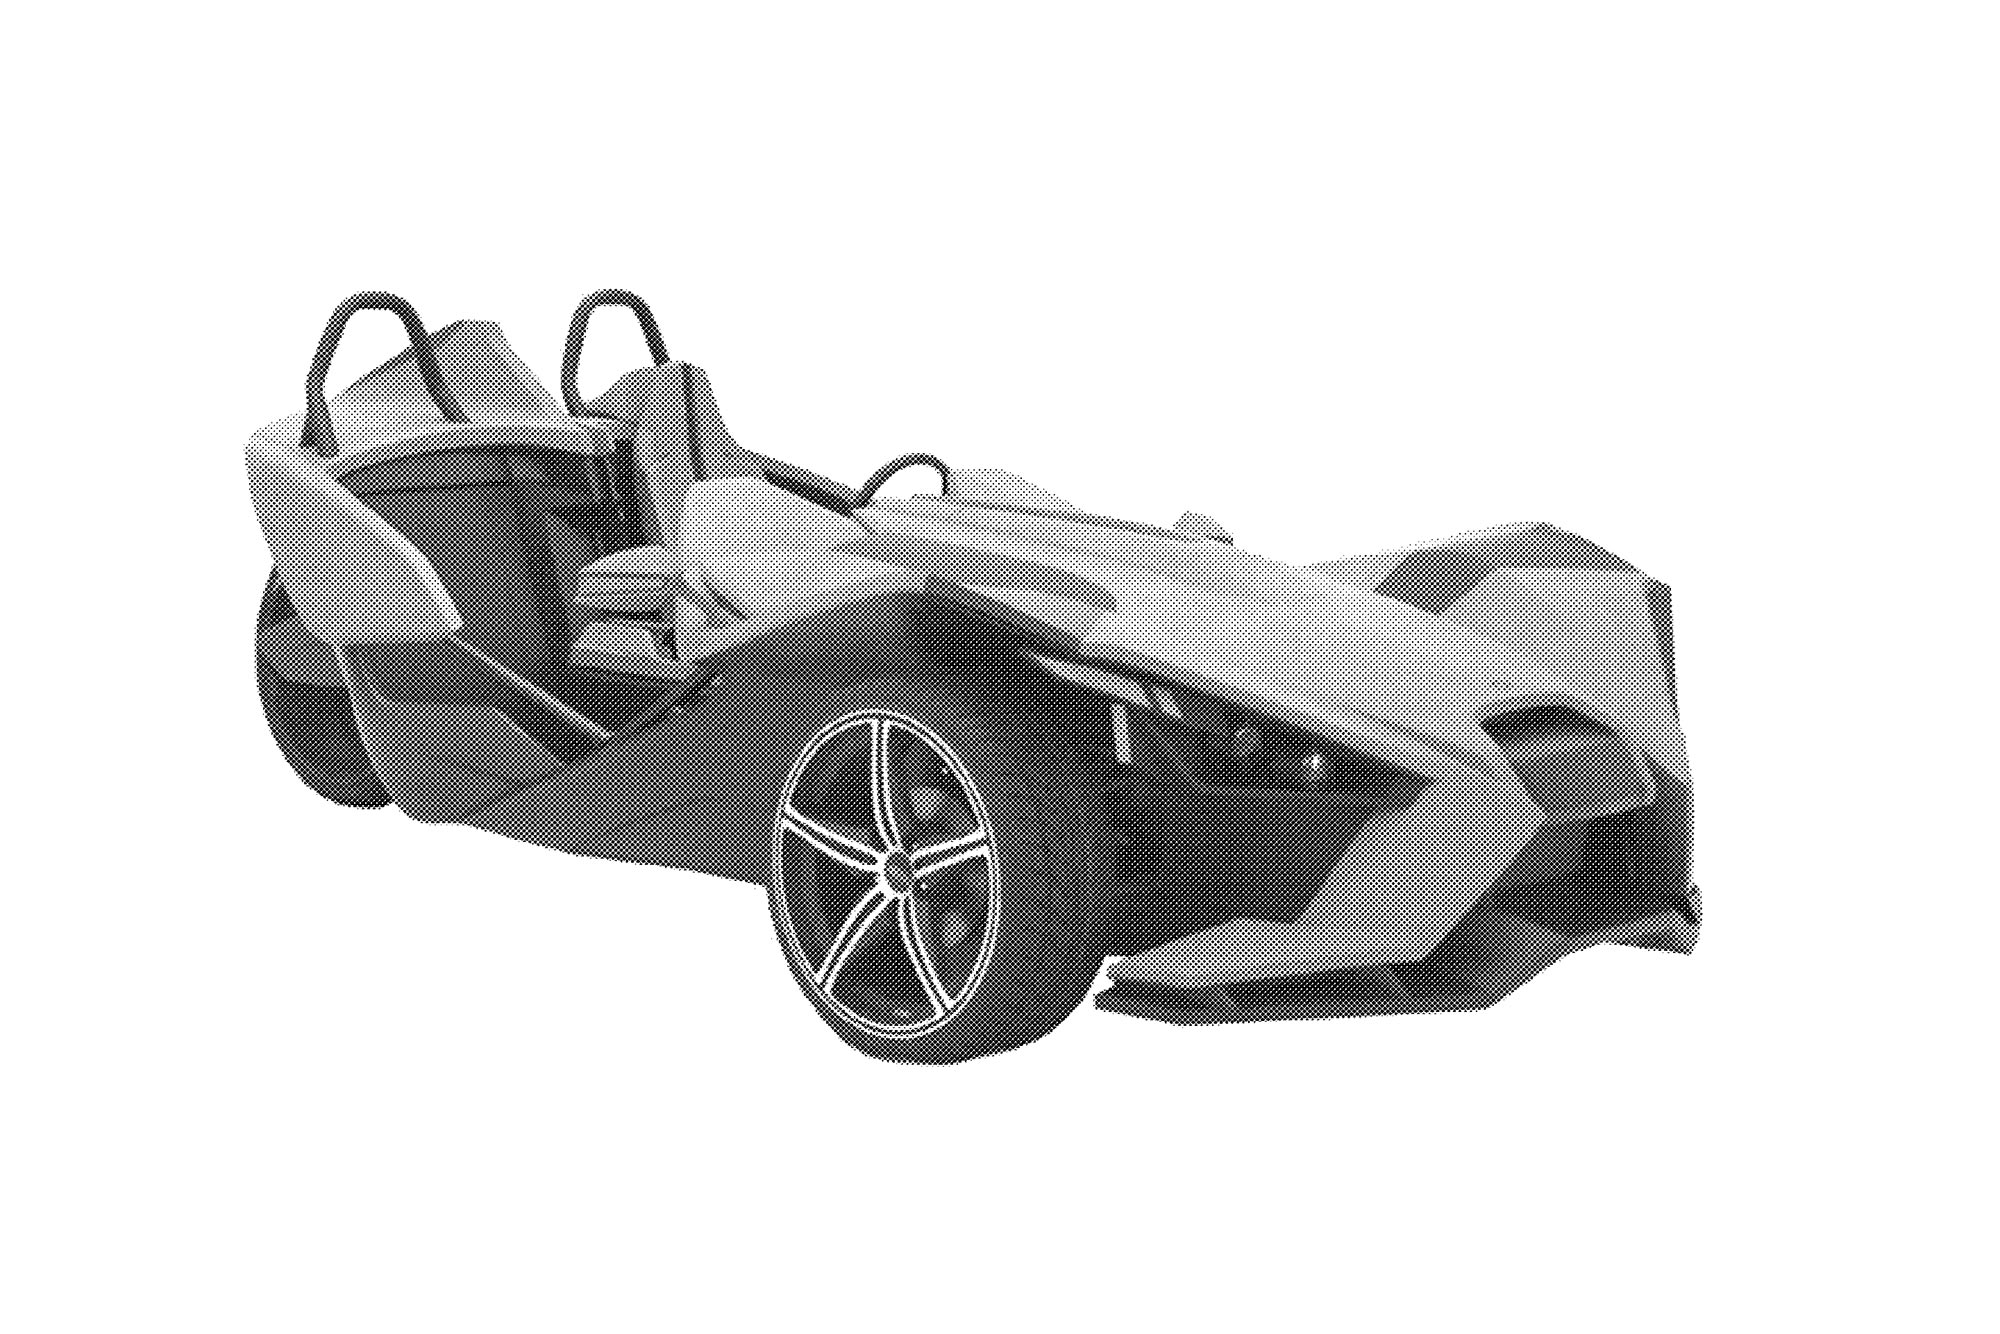 Polaris Slingshot Three Wheeler Trike 04